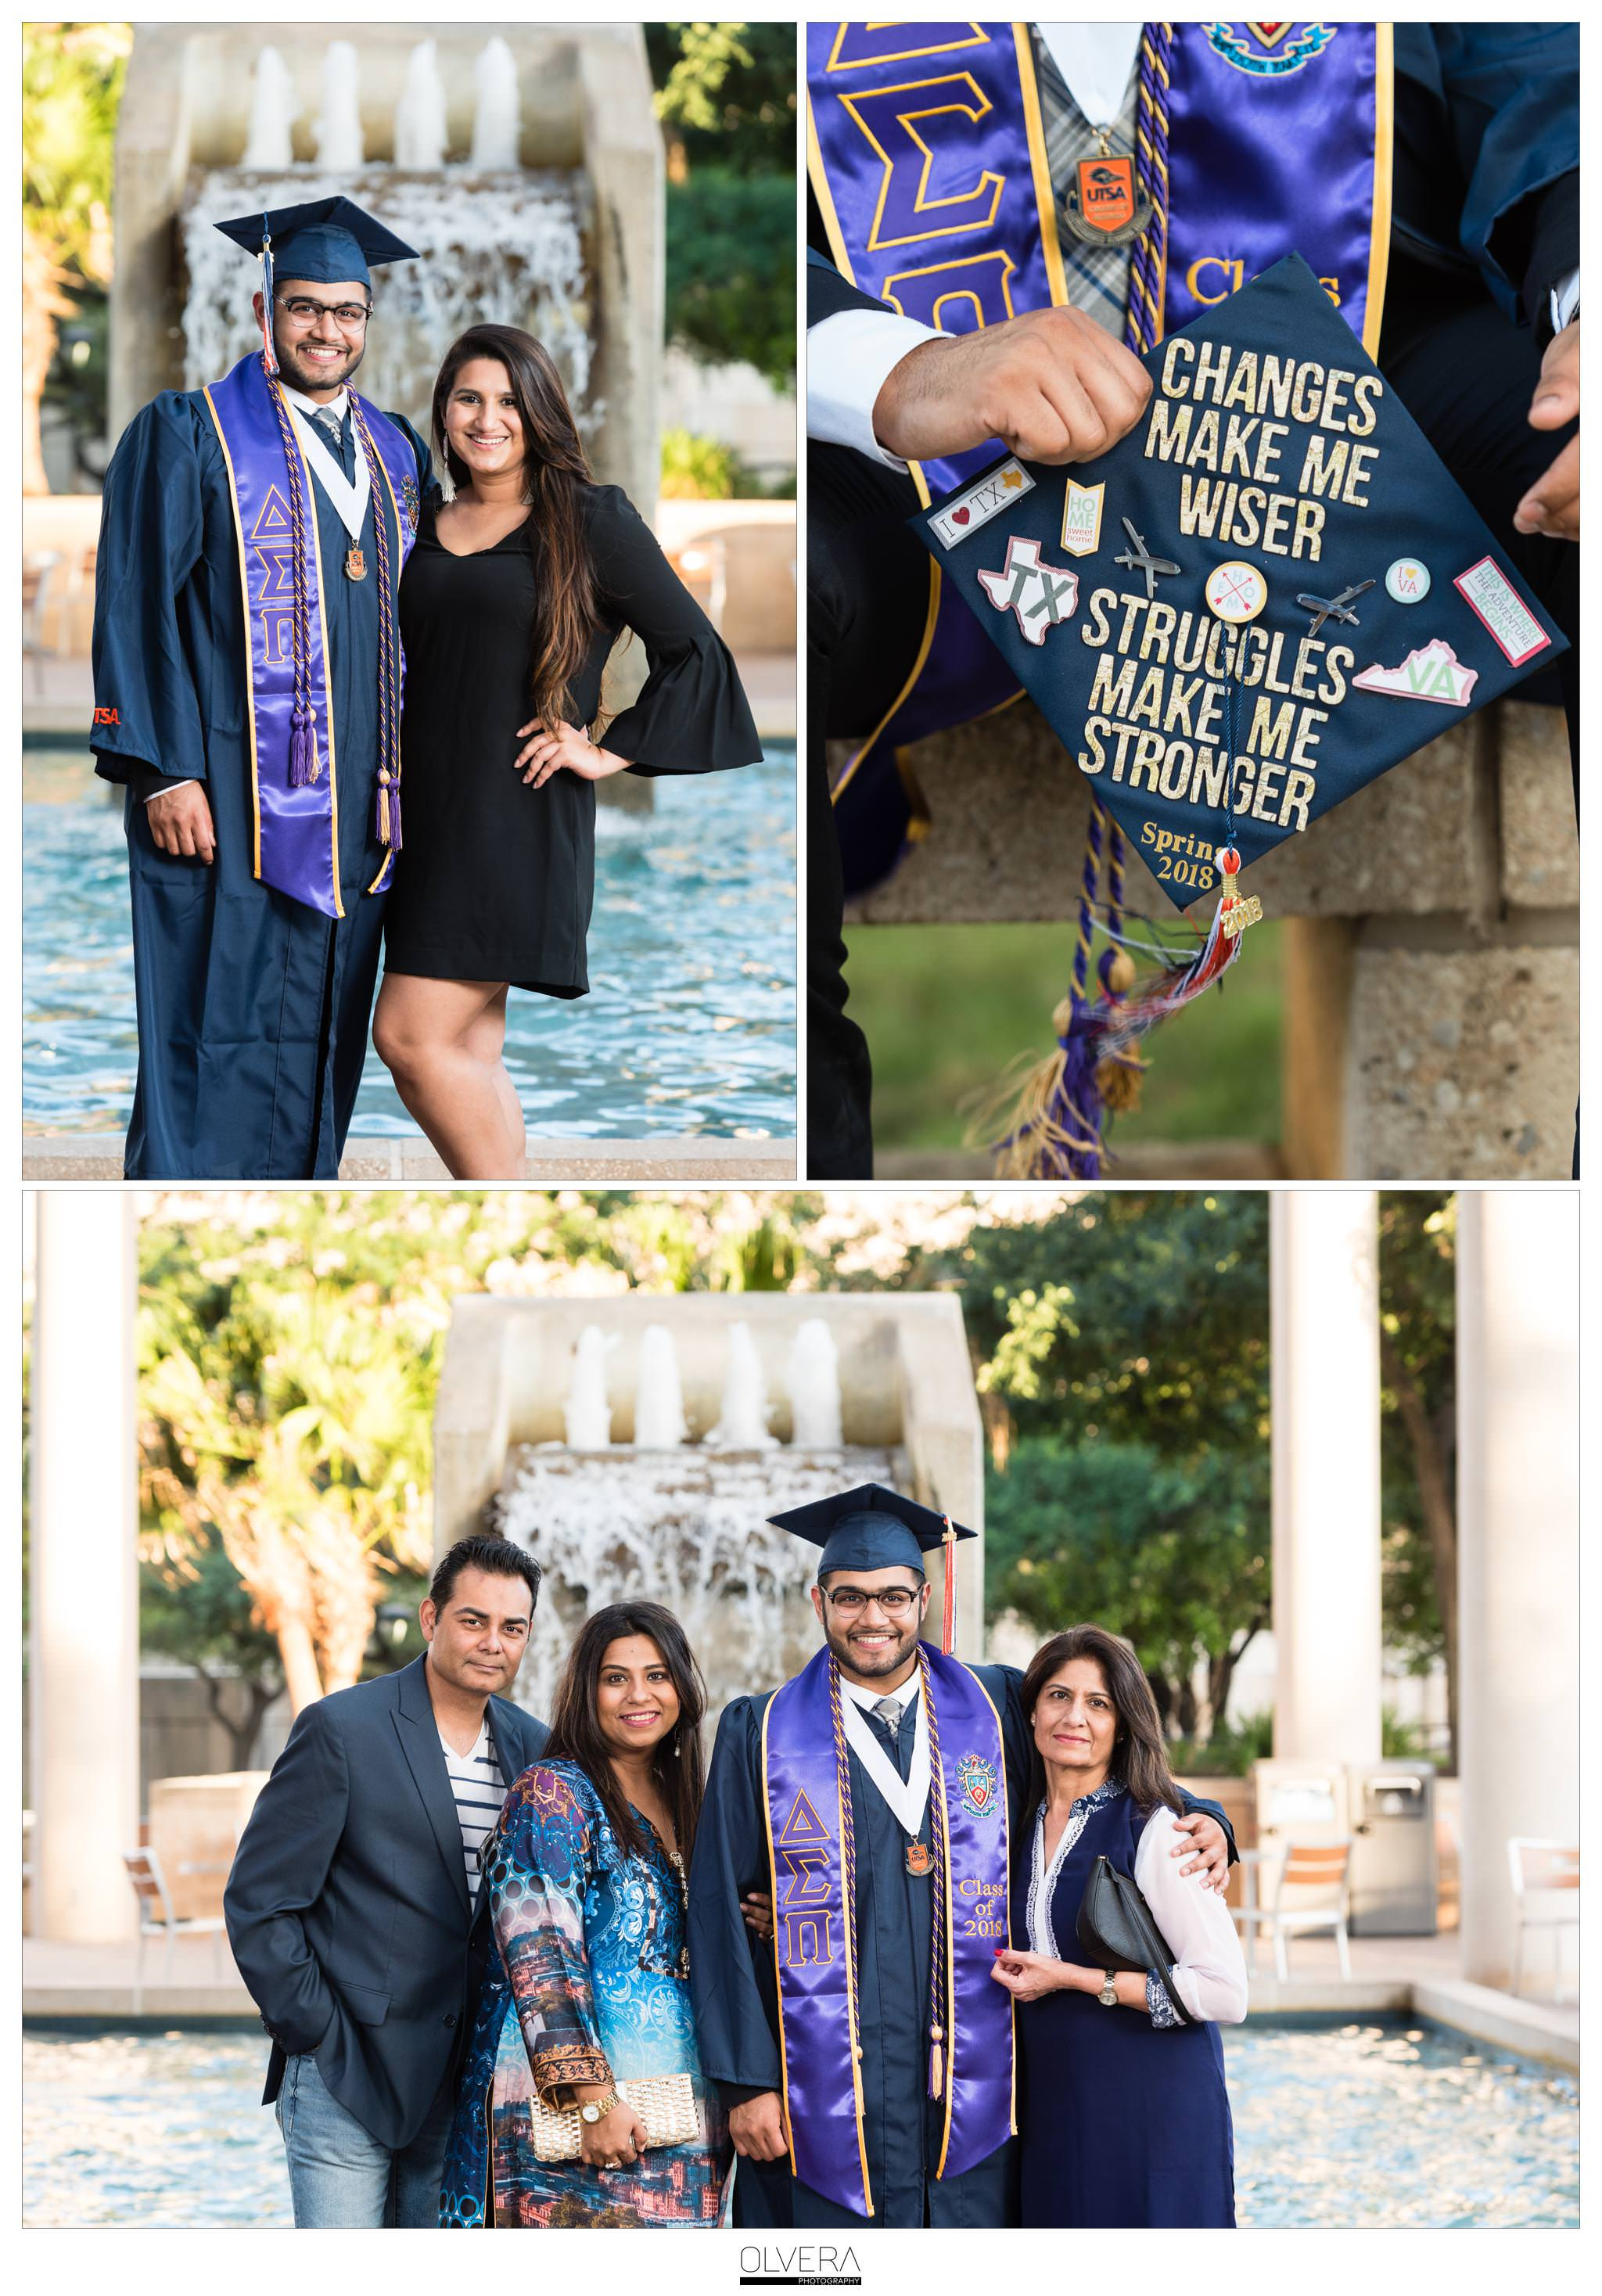 UTSA-Senior-Graduation- Portraits_San Antonio-TX 6